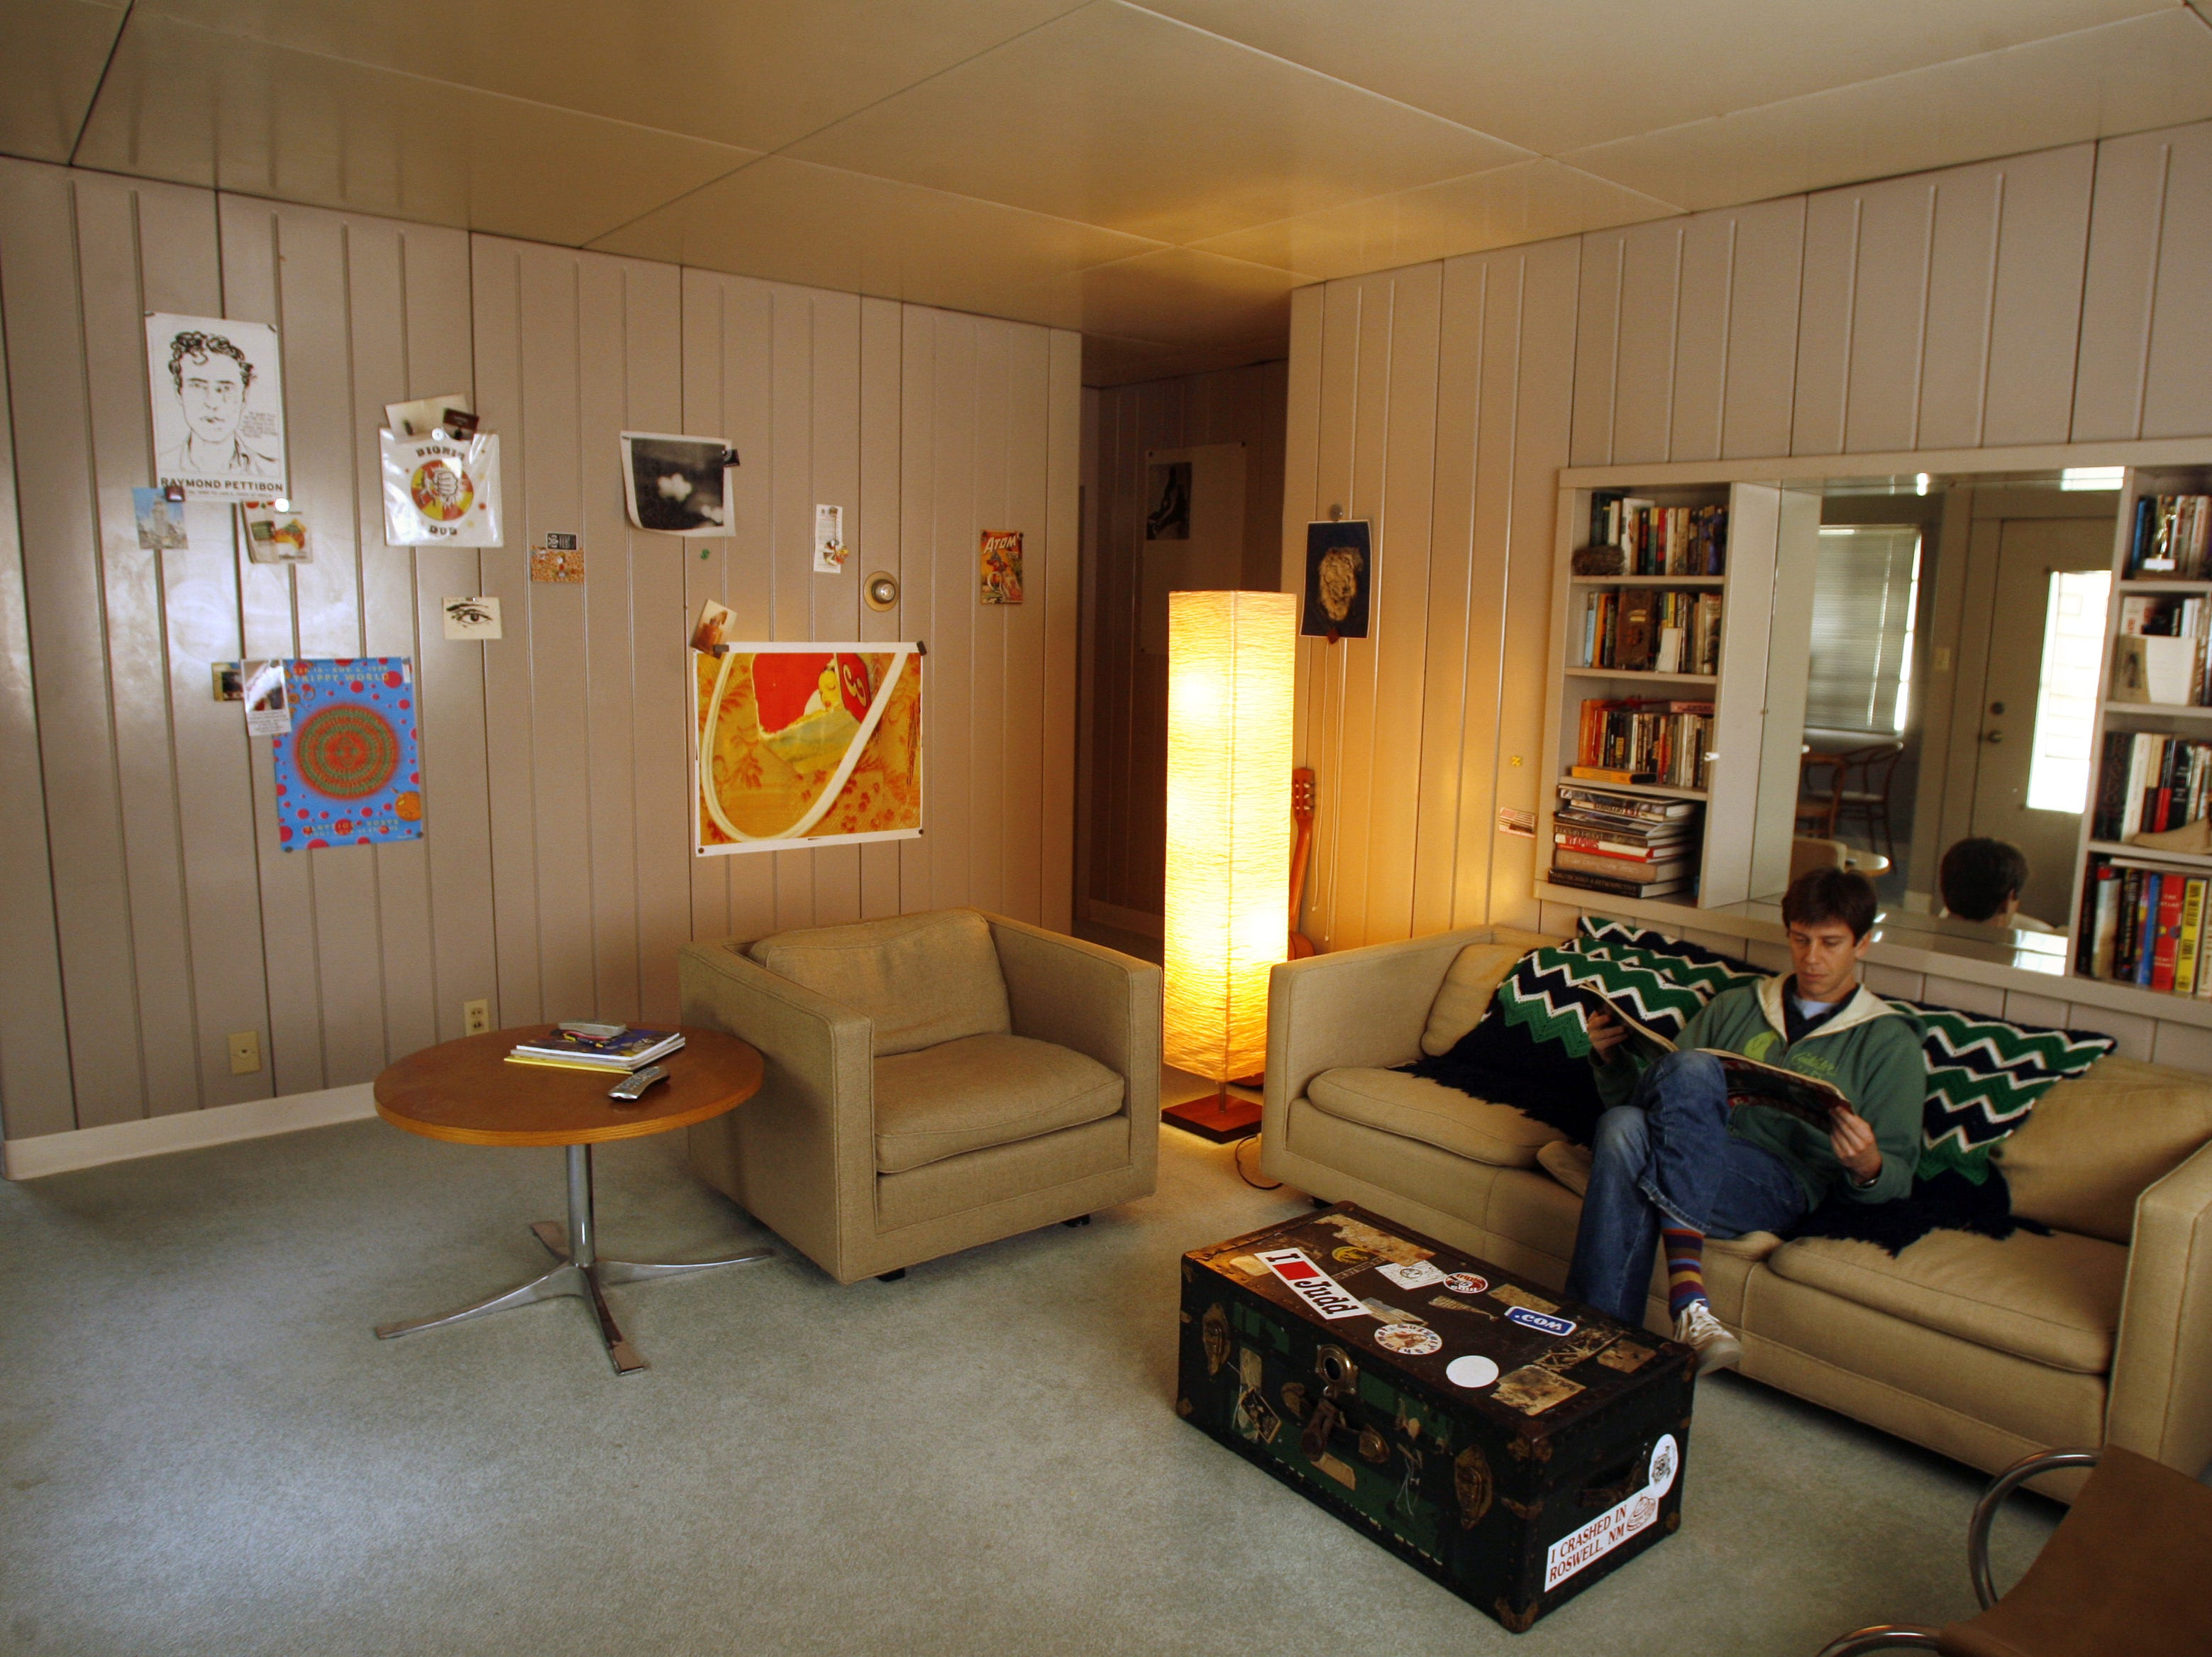 Alex Brown in his Lustron home in Des Moines from a 2006 file photo. He uses magnets to fasten art to the wall in his family room.